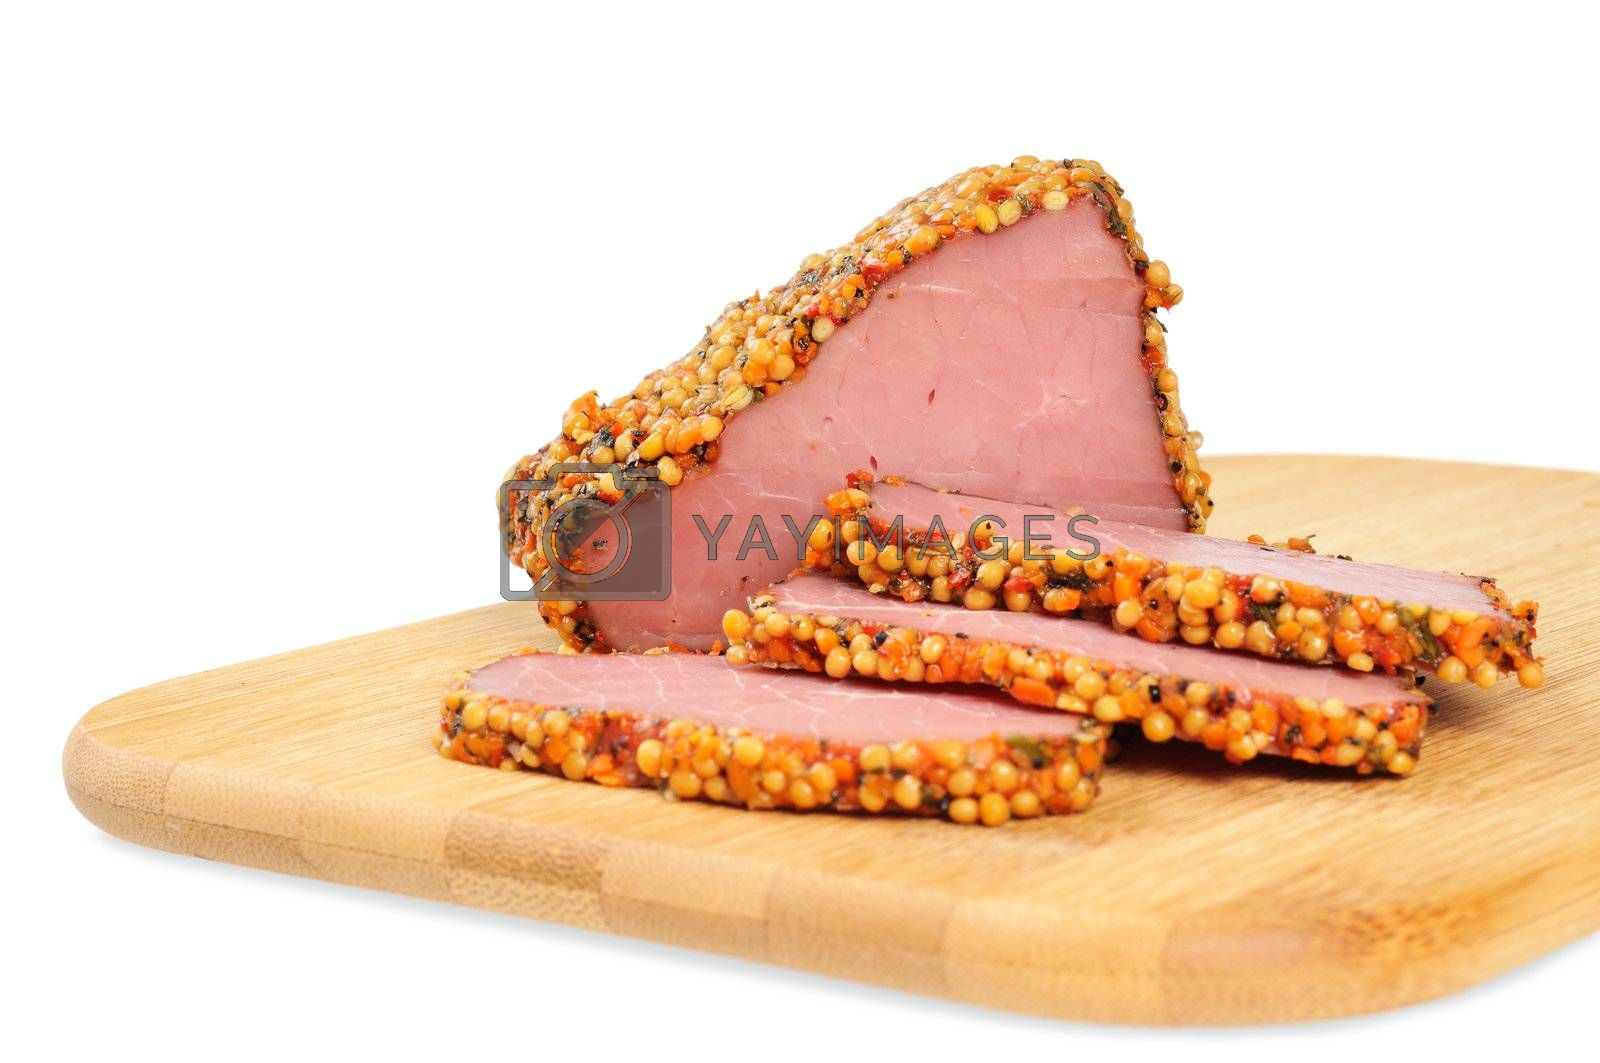 Piece of a ham with spices on a wooden board. Onwhite background.